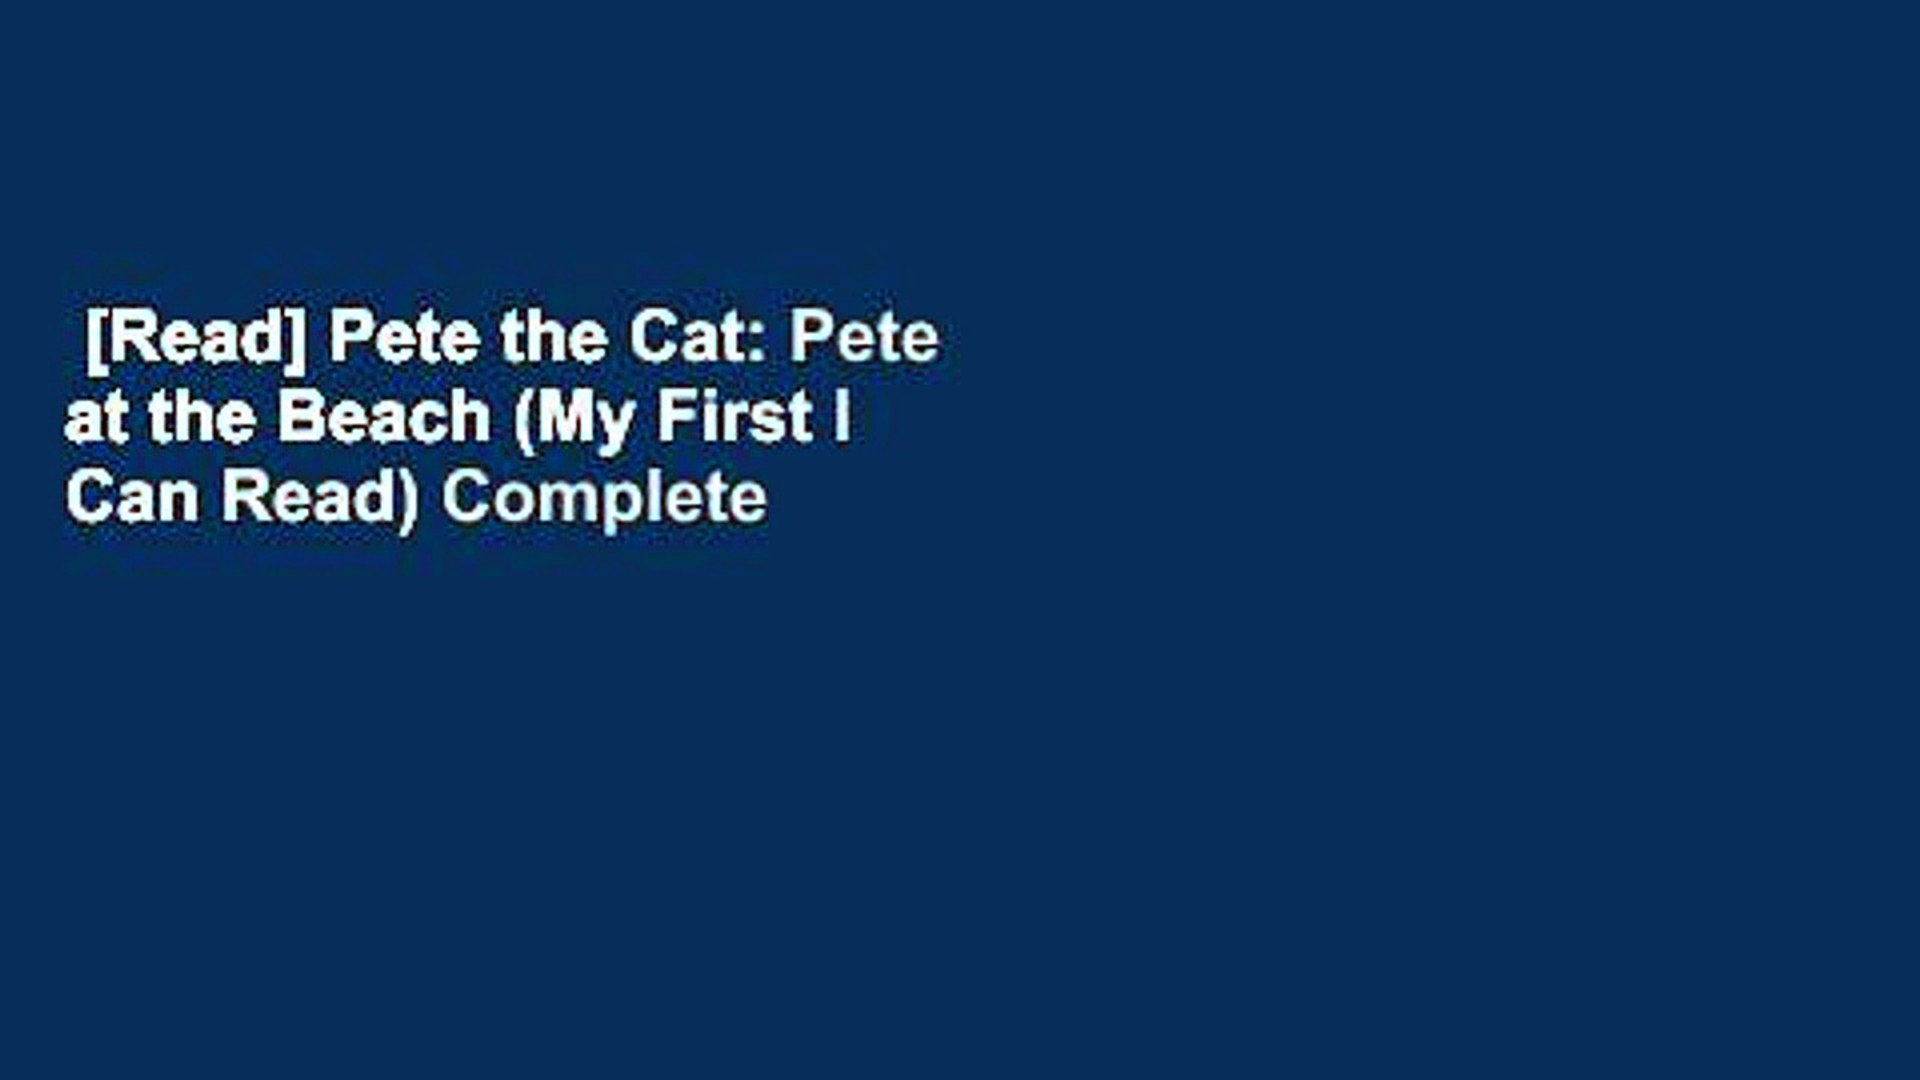 [Read] Pete the Cat: Pete at the Beach (My First I Can Read) Complete